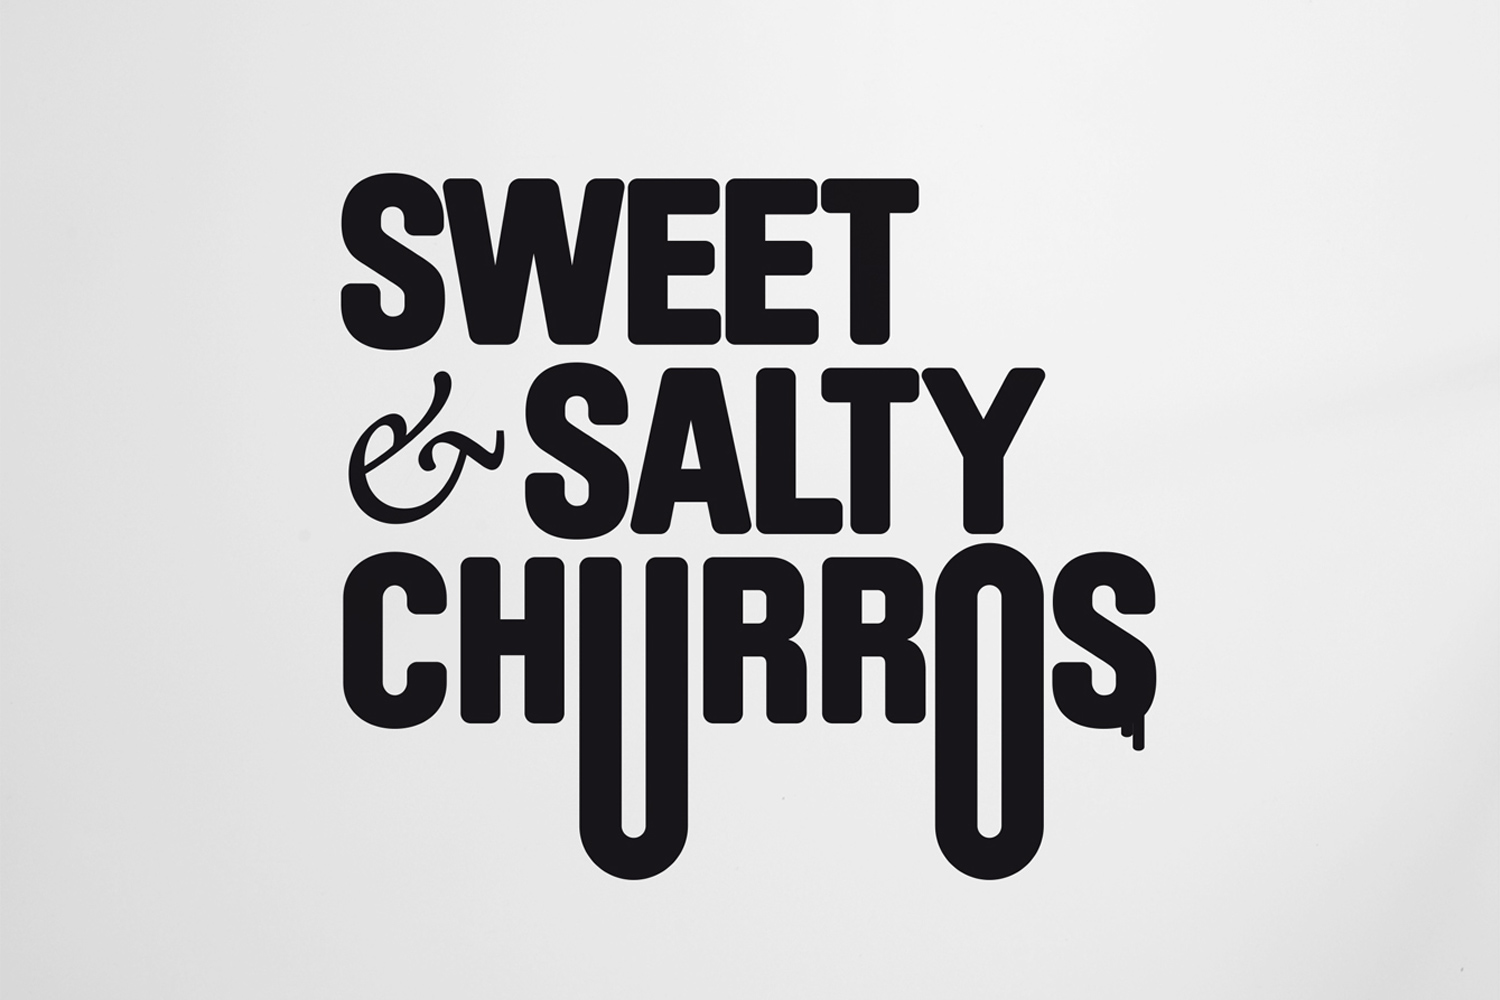 SWEET & SALTY CHURROS UP TO YOU STUDIO PROFESSIONAL SERVICES HOSPITALITY & LEISURE GRAPHIC DESIGN BRAND IDENTITY